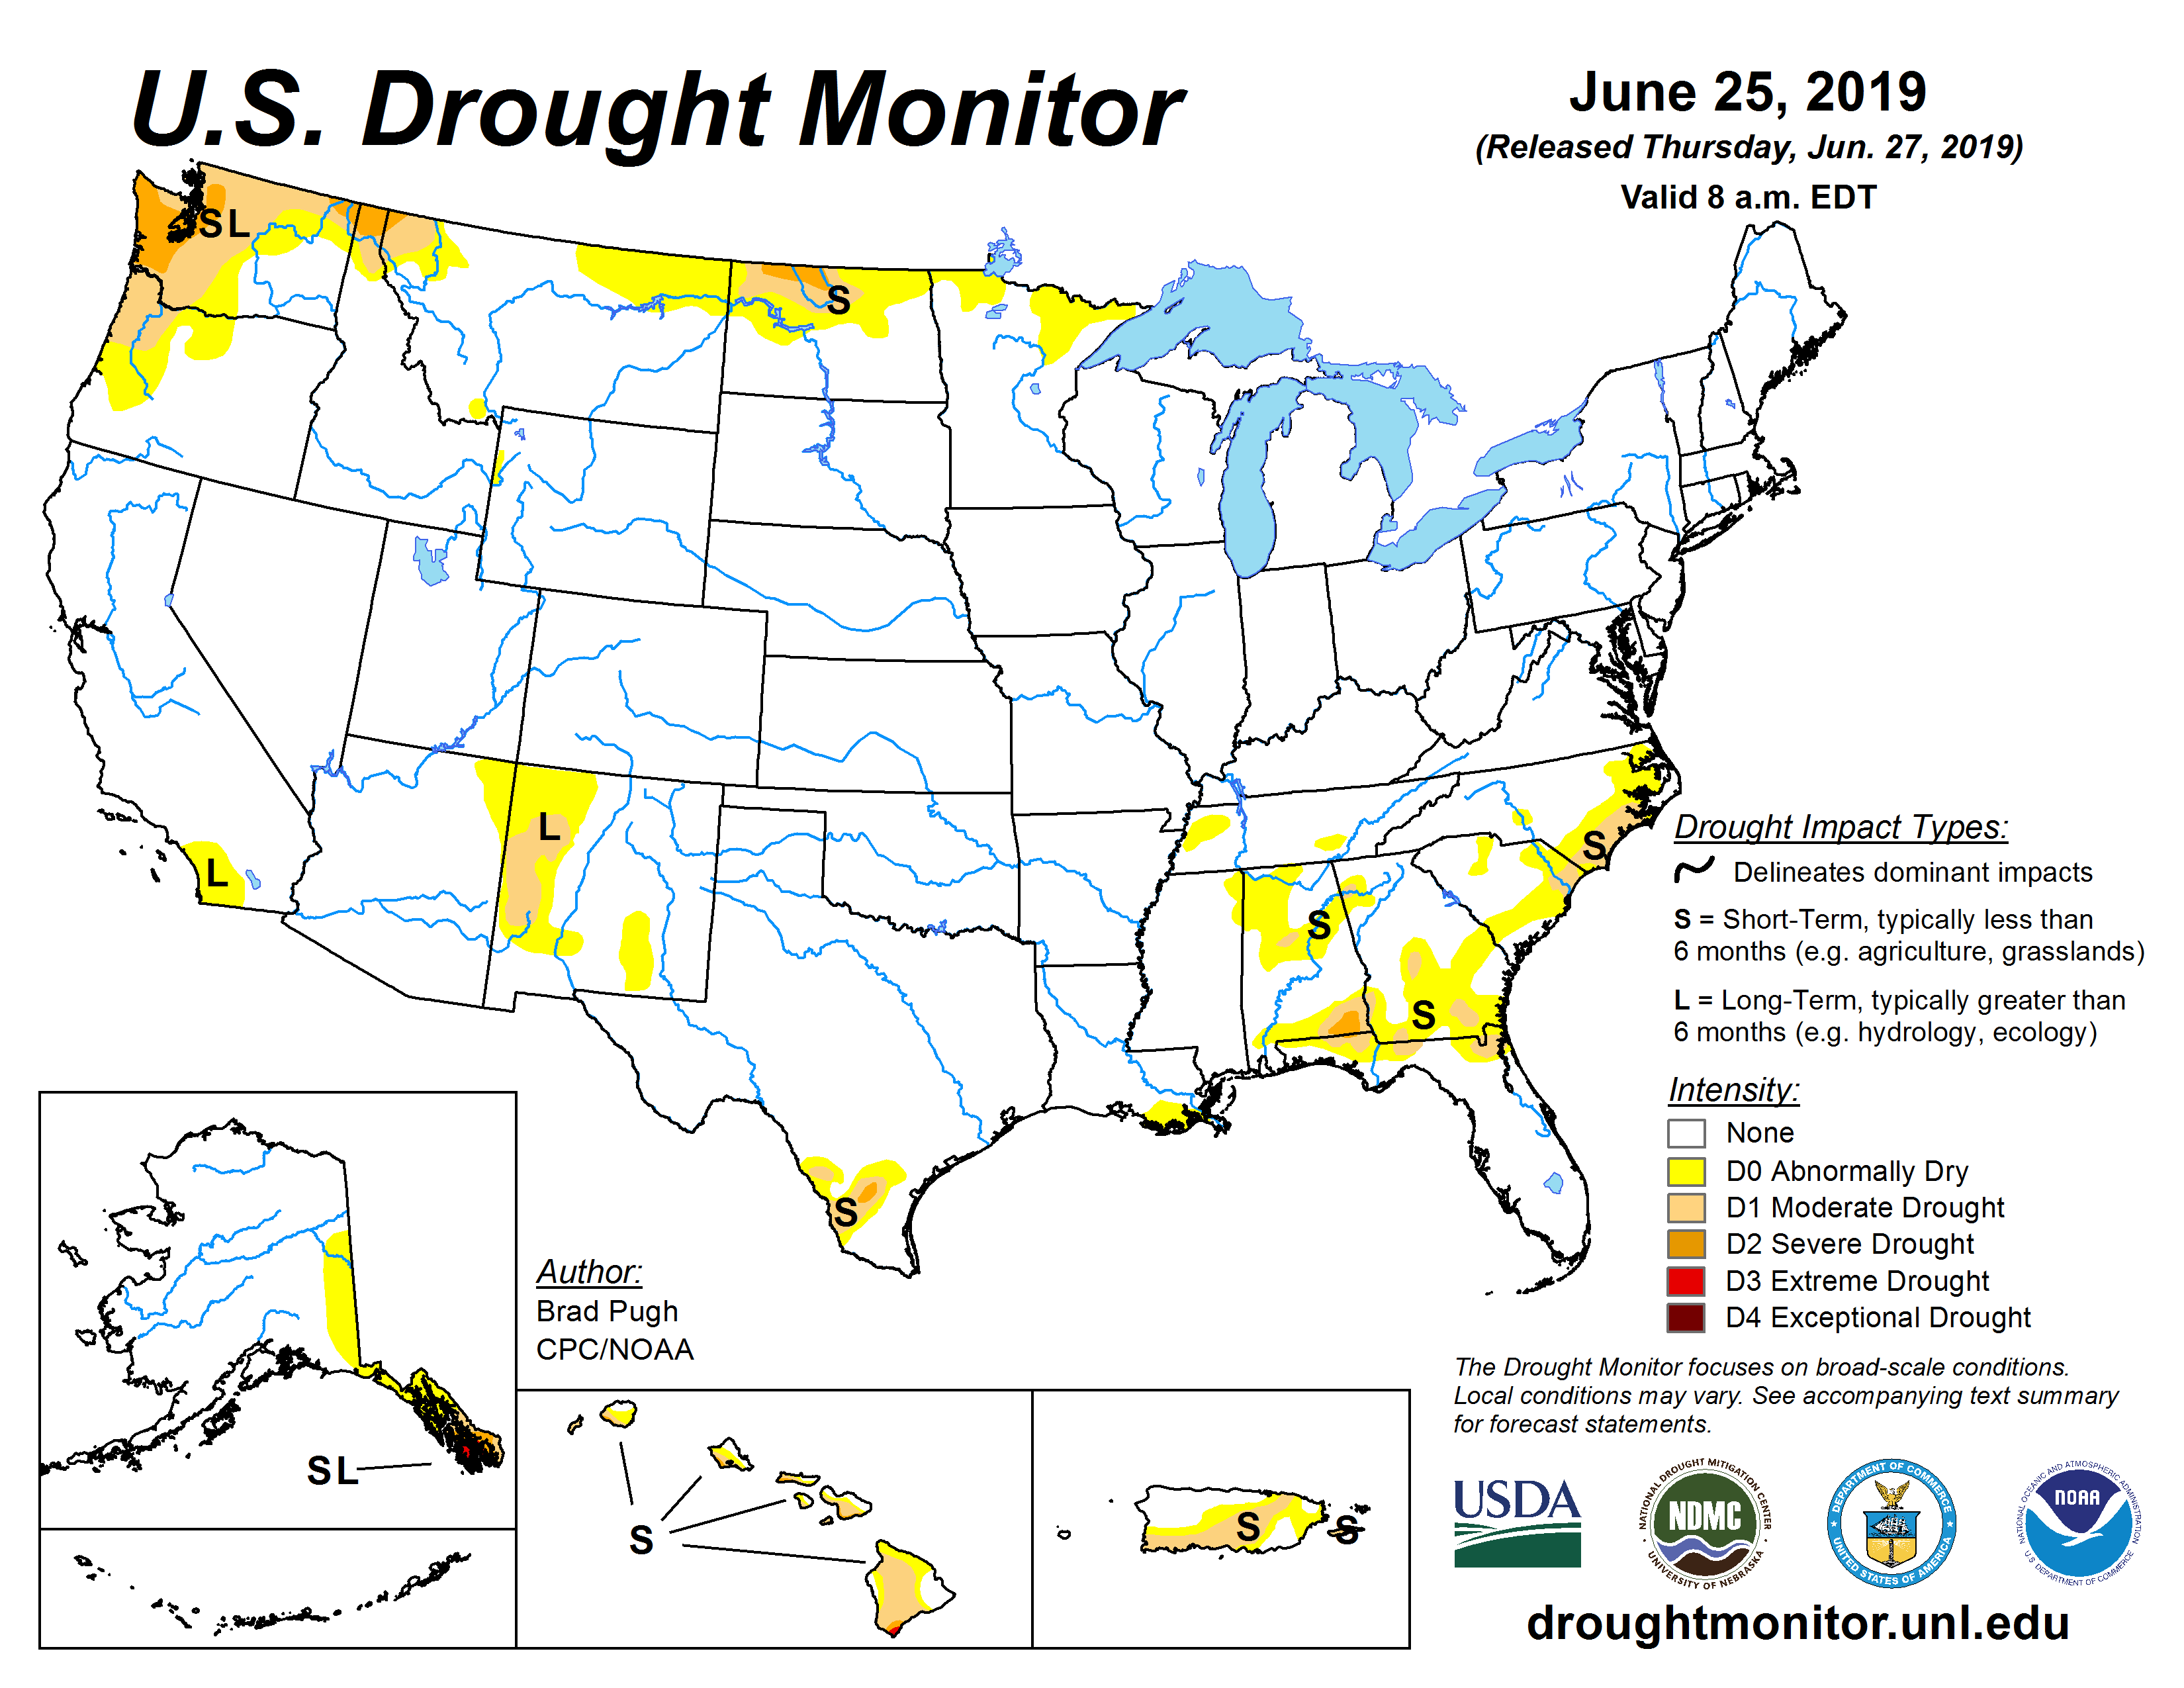 Figure 3: Drought Monitor map. source:droughtmonitor.unl.edu